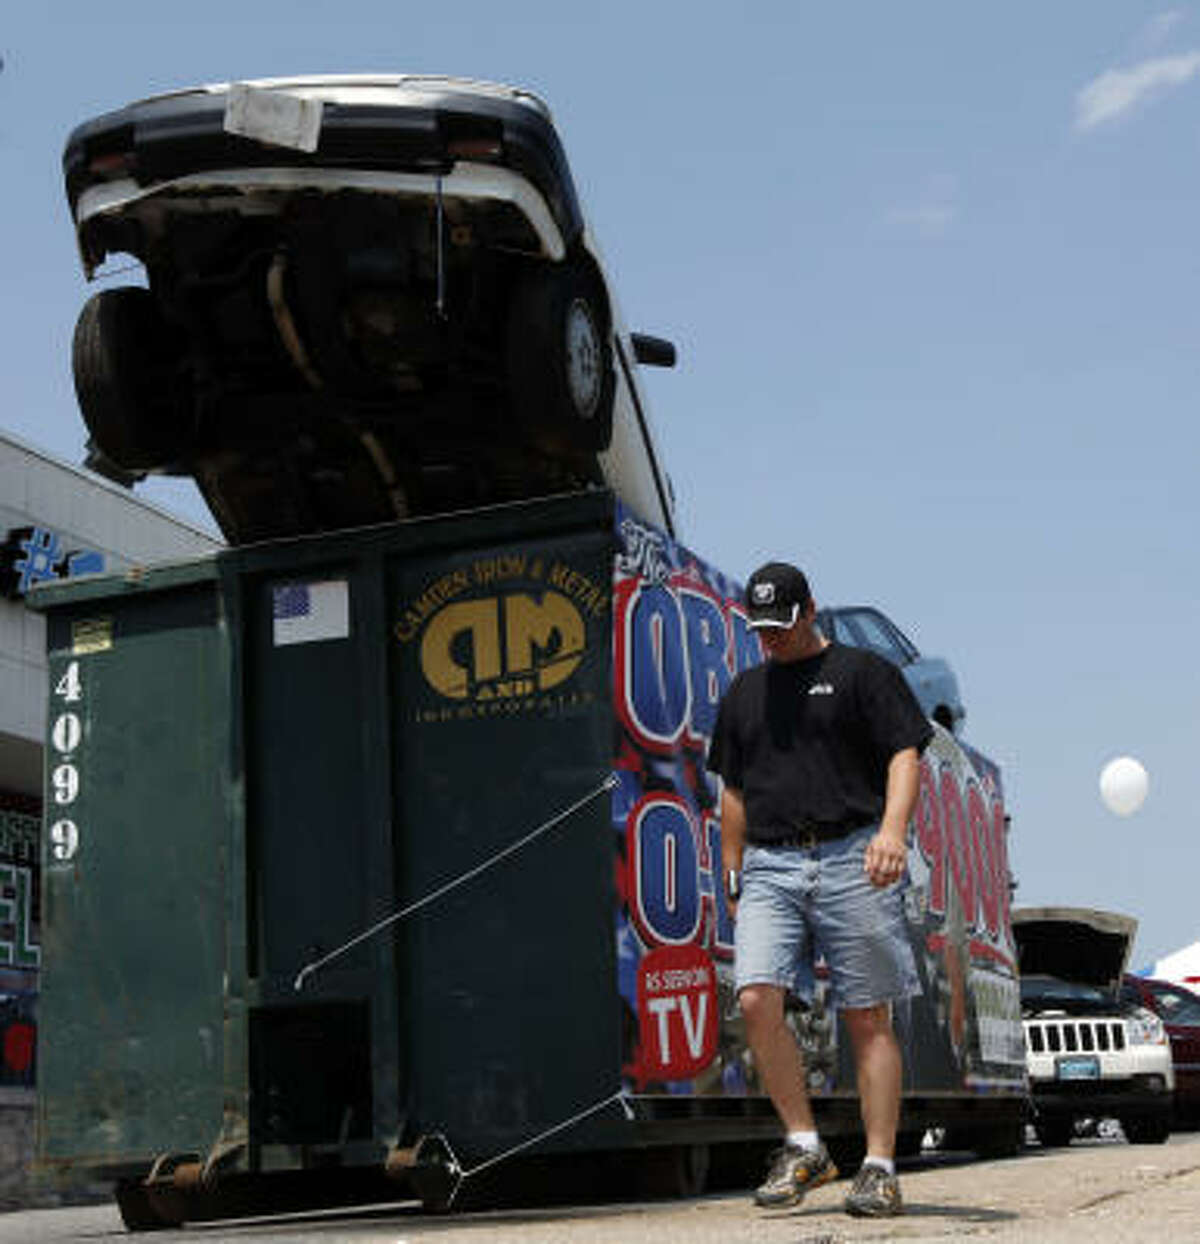 A person passes a car in a Dumpster placed in front of an auto dealership in Philadelphia as a promotion for the